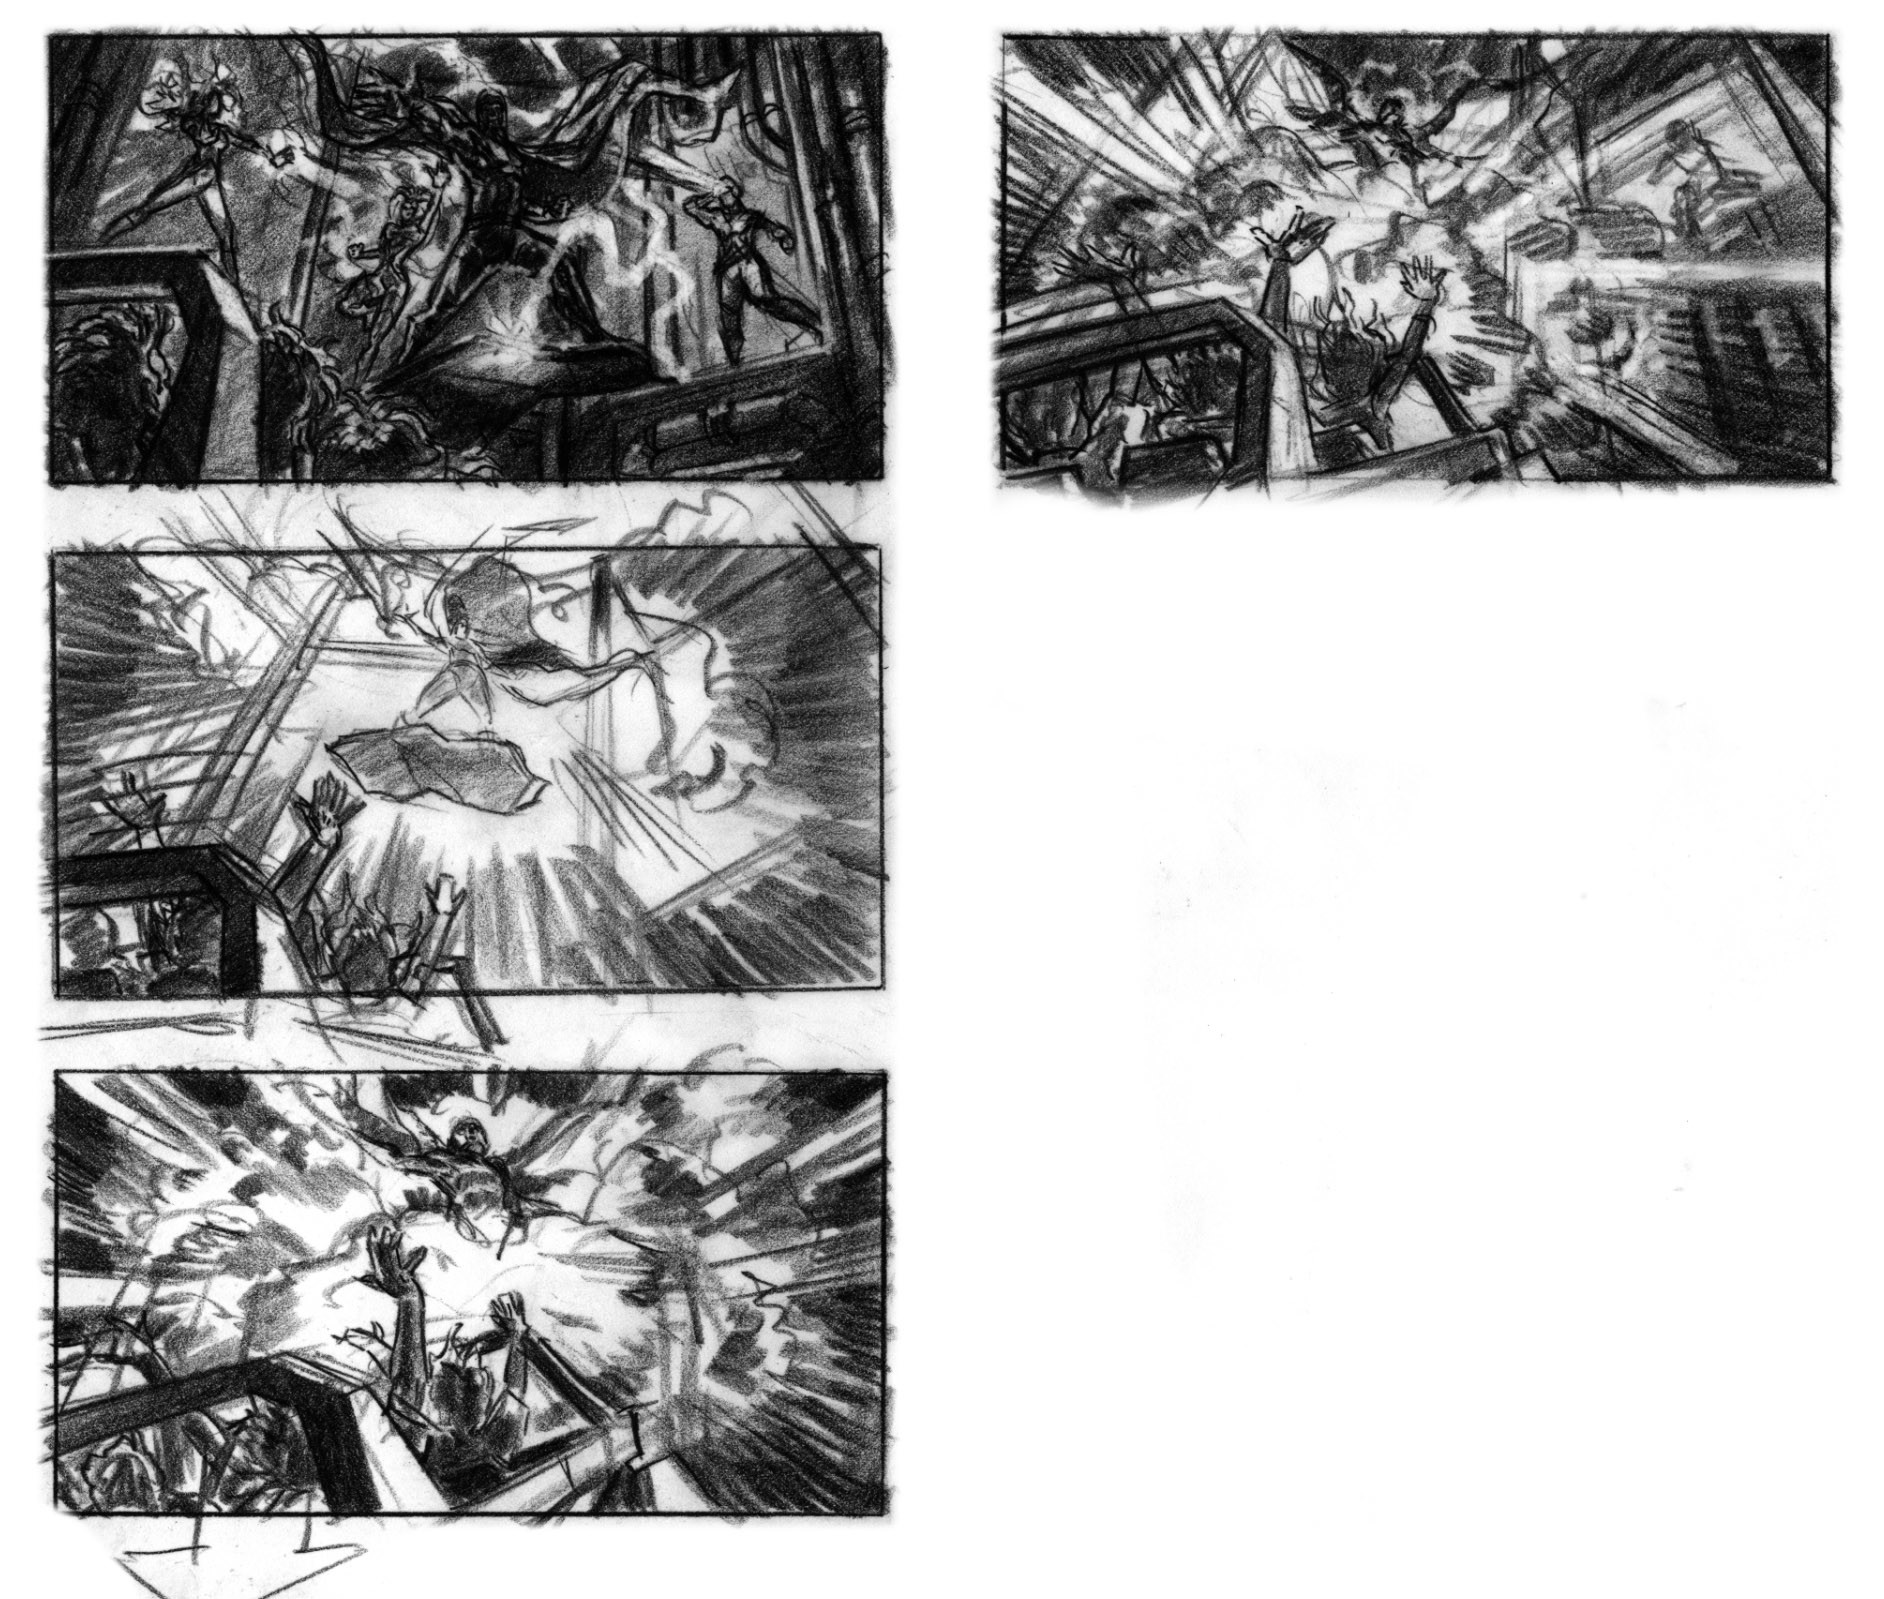 Phil saunders xmen thumbs 11